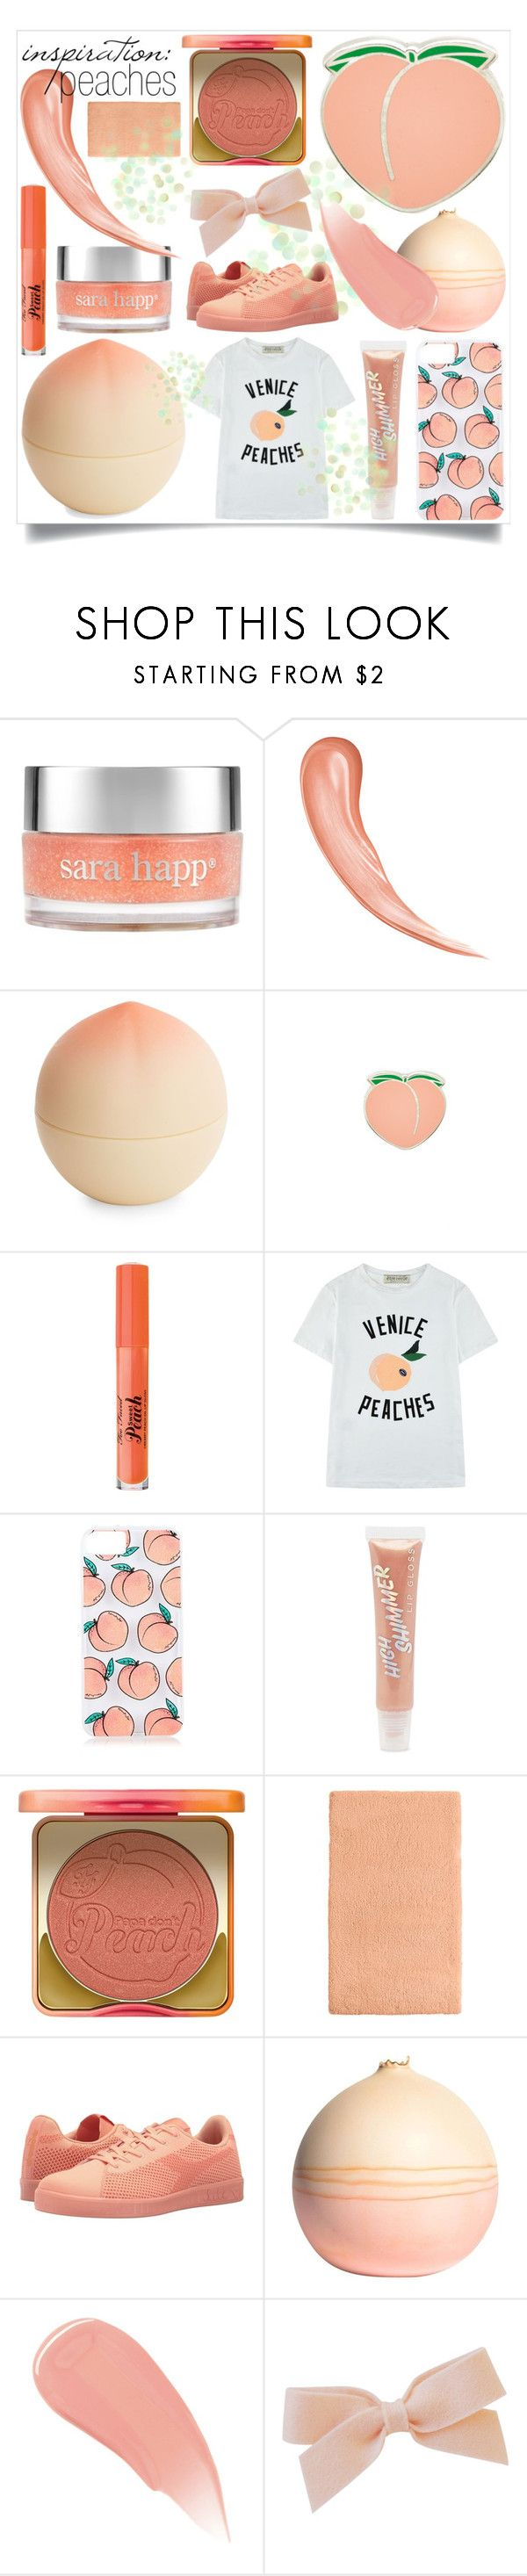 """inspiration: peaches - 20170707"" by catharines-closet ❤ liked on Polyvore featuring Sara Happ, Tony Moly, PINTRILL, Too Faced Cosmetics, Être Cécile, Skinnydip, Forever 21, Martha Stewart, Diadora and Elyse Graham"